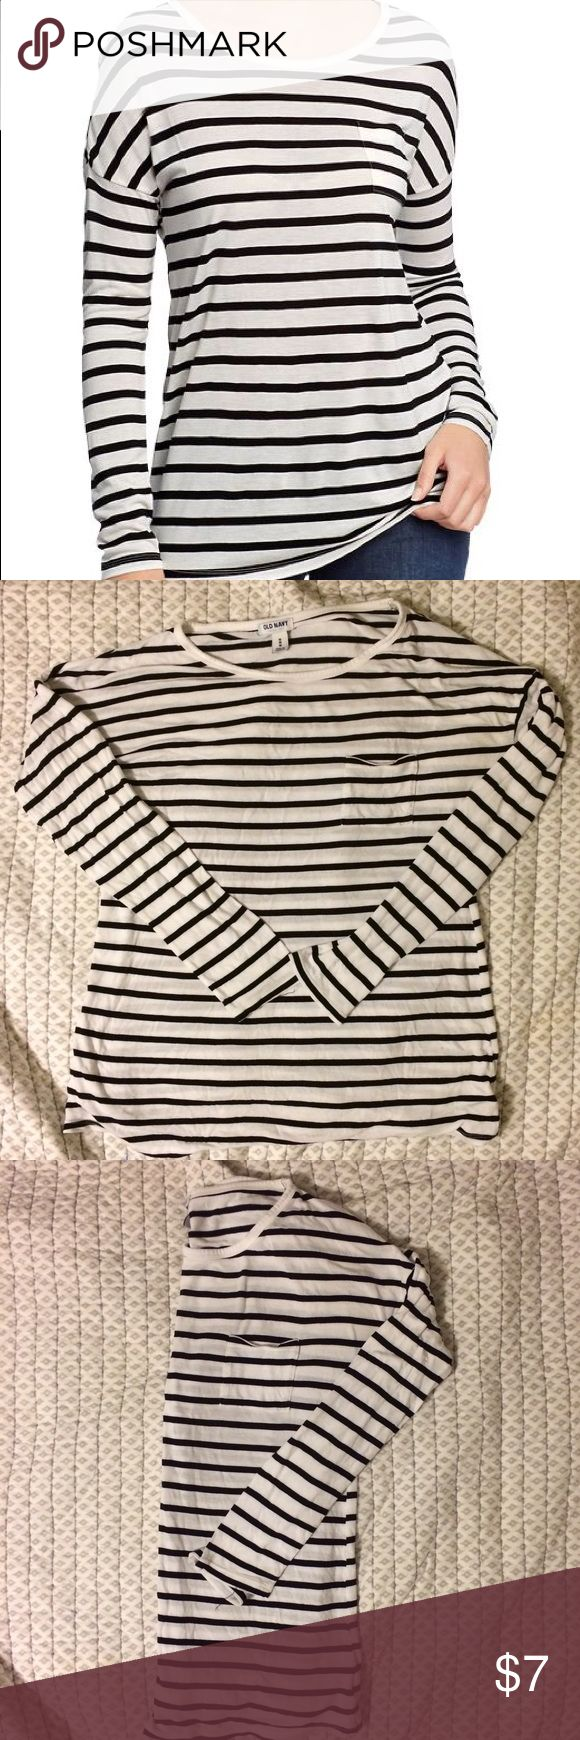 Old Navy Classic Mariner Striped Tee Audrey meets nautical in this beautiful long sleeve tee. The super soft, lightweight piece keeps you comfortable while looking tres chic. Pair it with black crops and ballet flats or jeans. | Great Pre-Owned Condition | Smoke-Free/ Pet-Free Home Old Navy Tops Tees - Long Sleeve